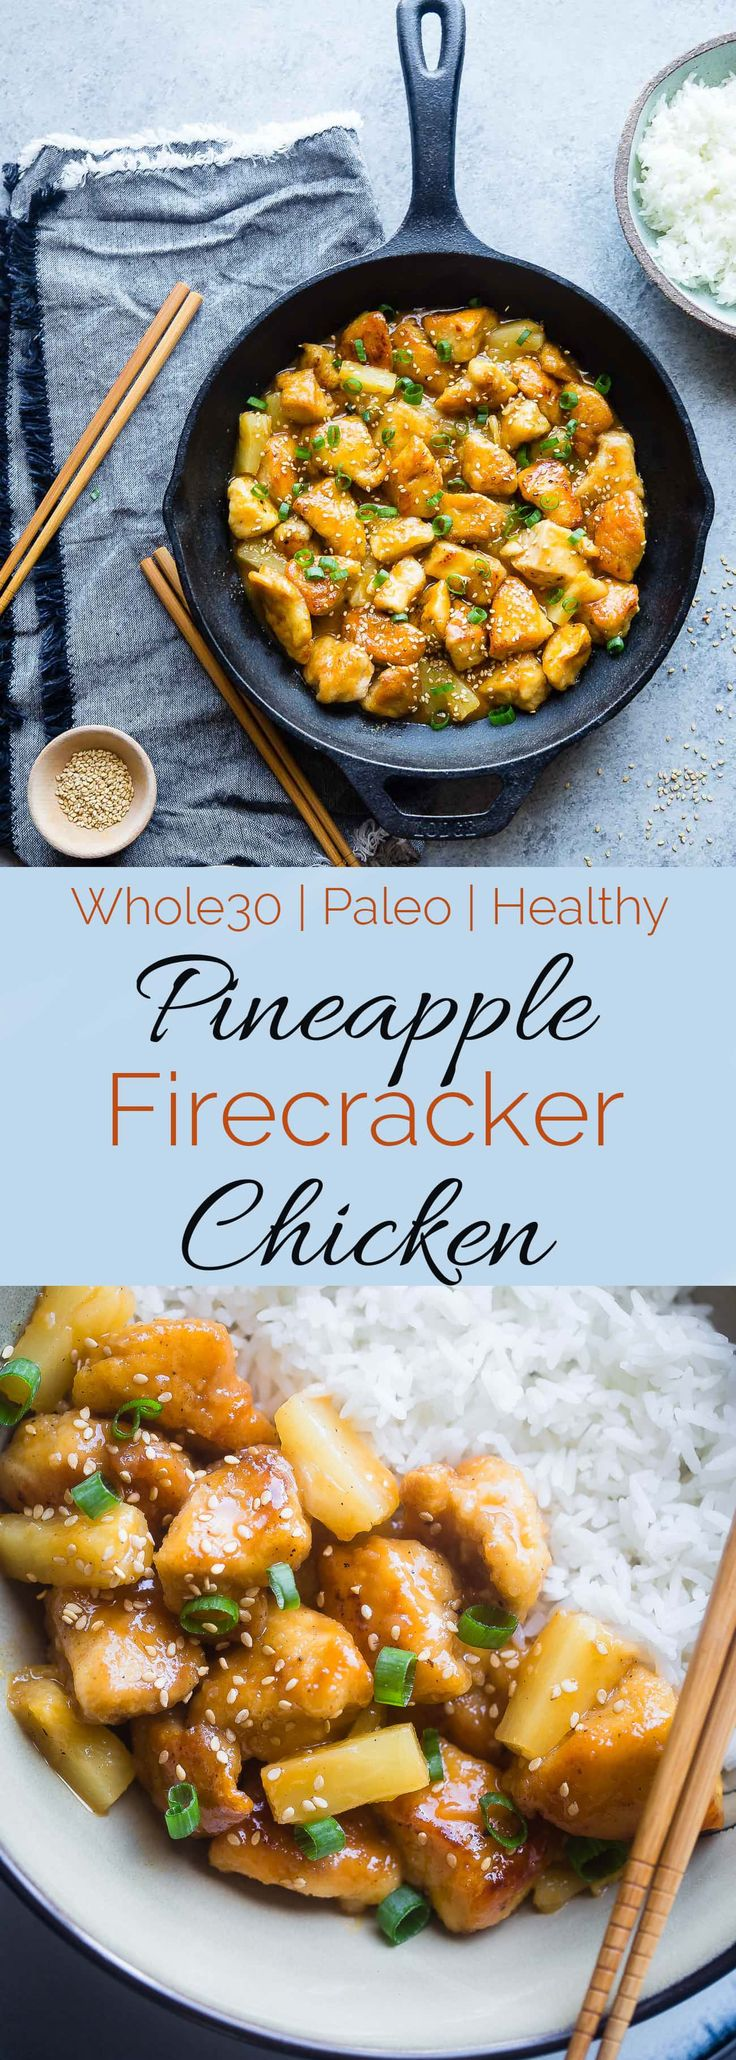 Whole30 Firecracker Pineapple Chicken - This healthy, sweet and spicy chicken is way better than takeout! A gluten free, paleo and whole30 cimpliant dinner that is always a crowd pleaser! | Foodfaithfitness.com | @FoodFaithFit